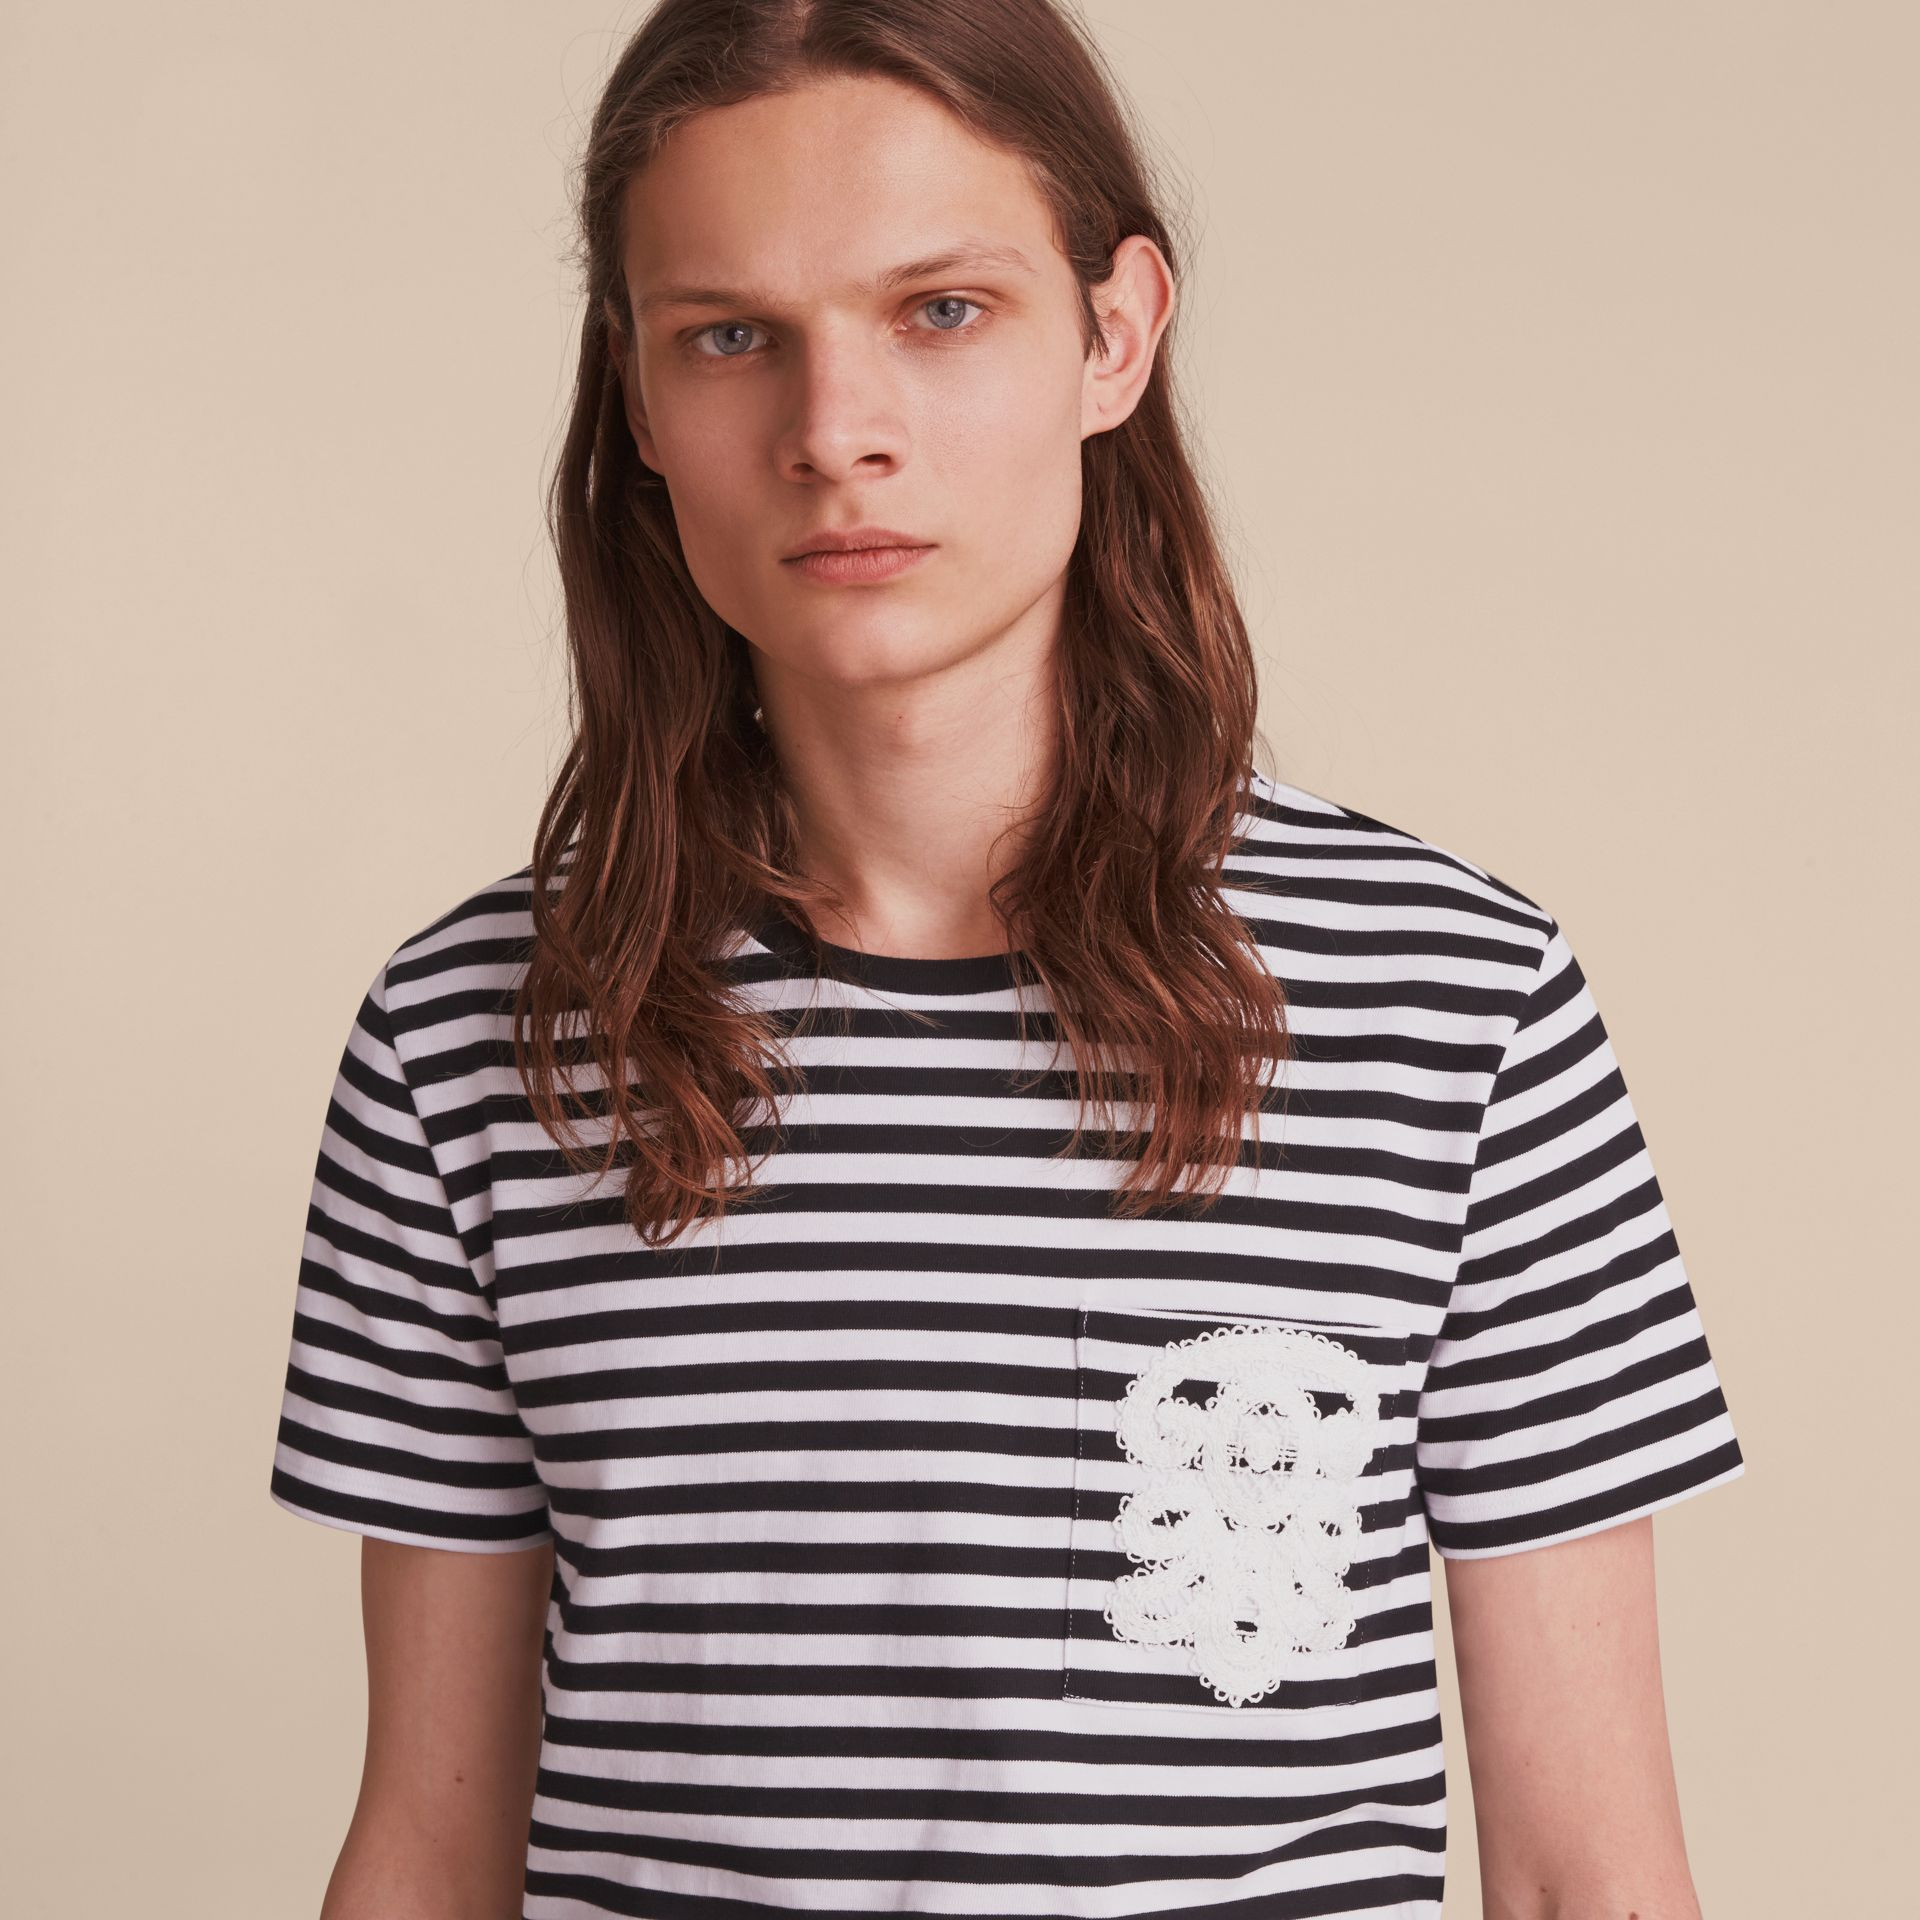 Lace Appliqué Detail Breton Stripe Cotton T-shirt in Black/white - Men | Burberry - gallery image 5